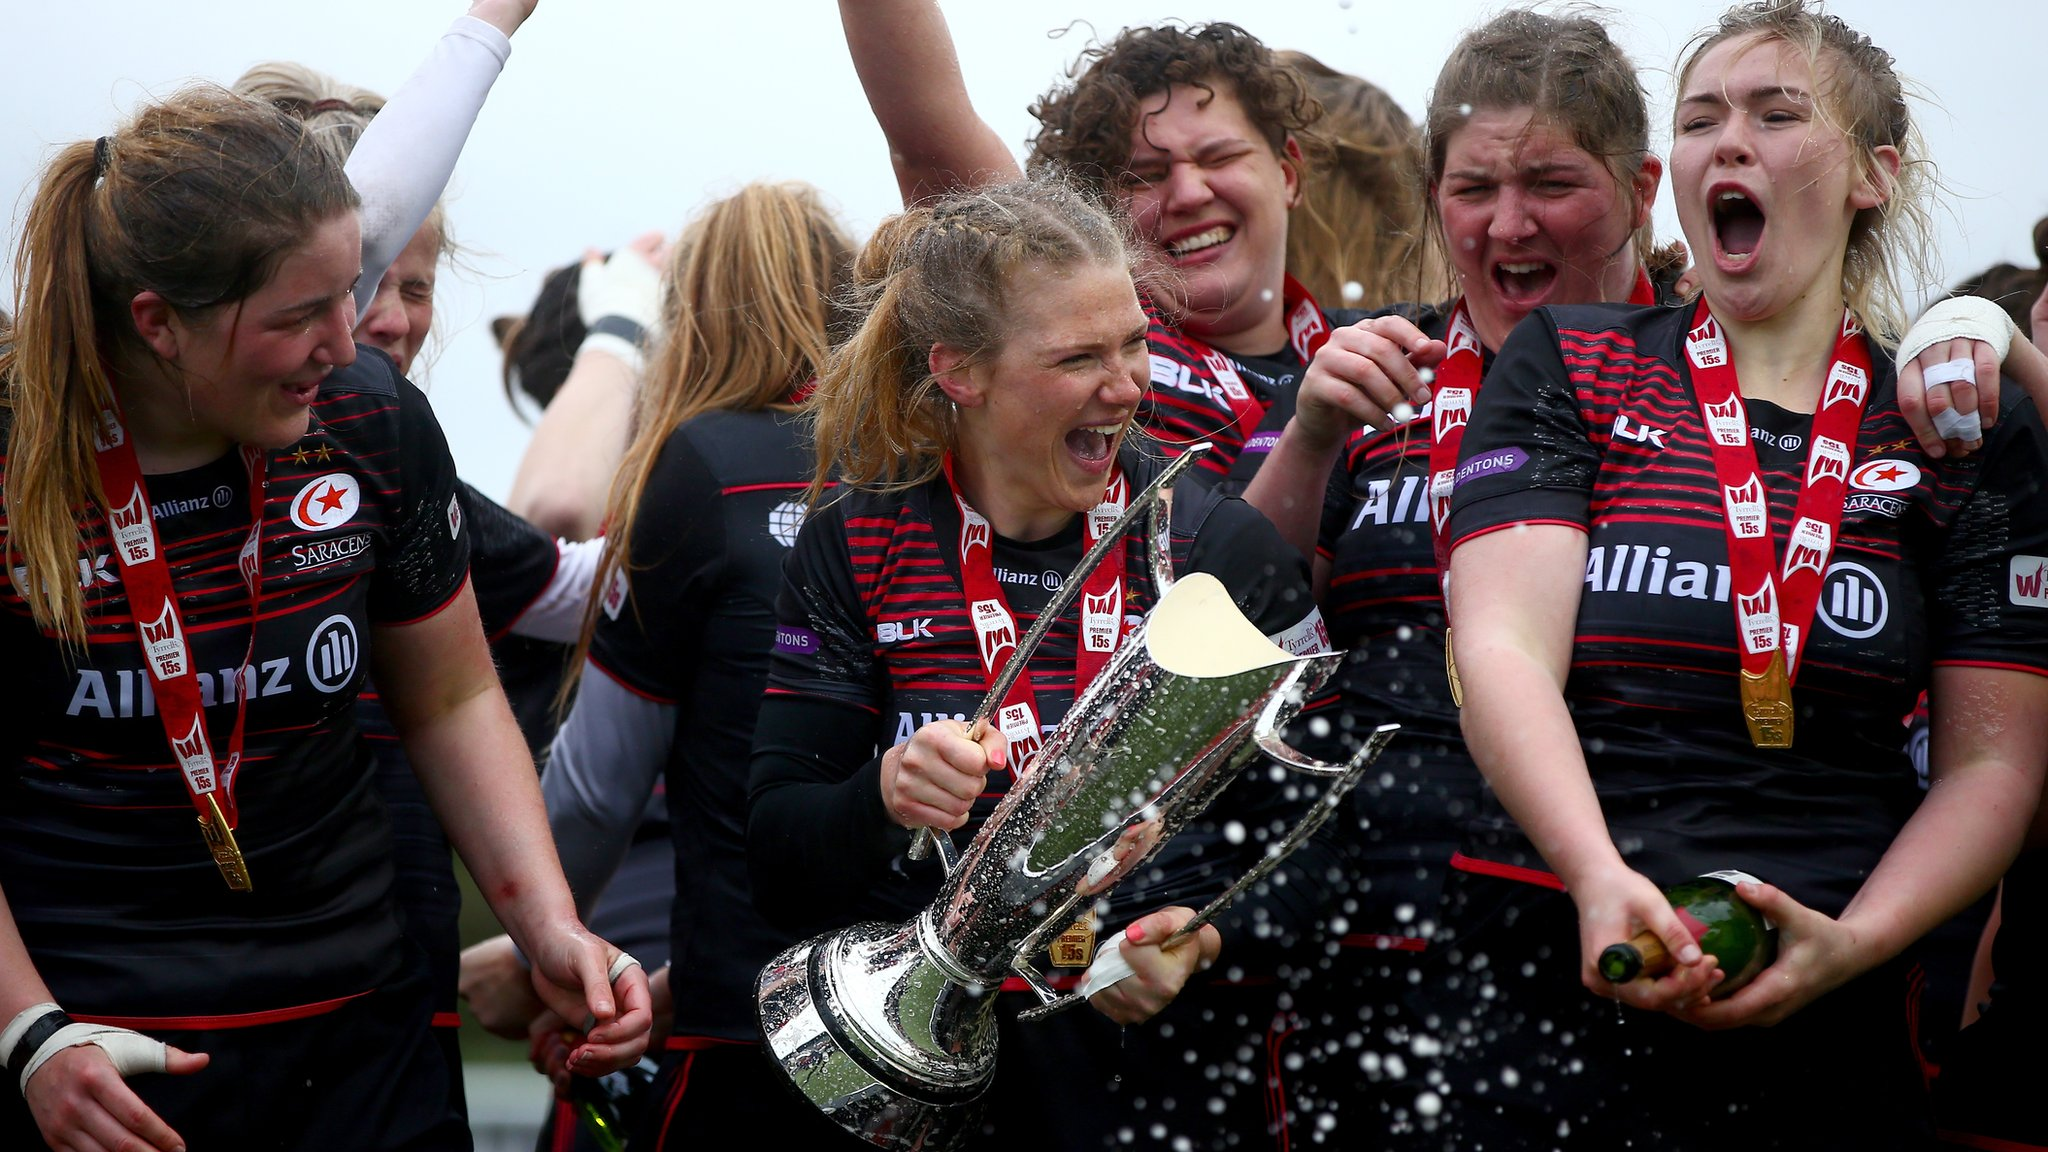 Saracens and Loughborough maintain 100% start in Premier 15s